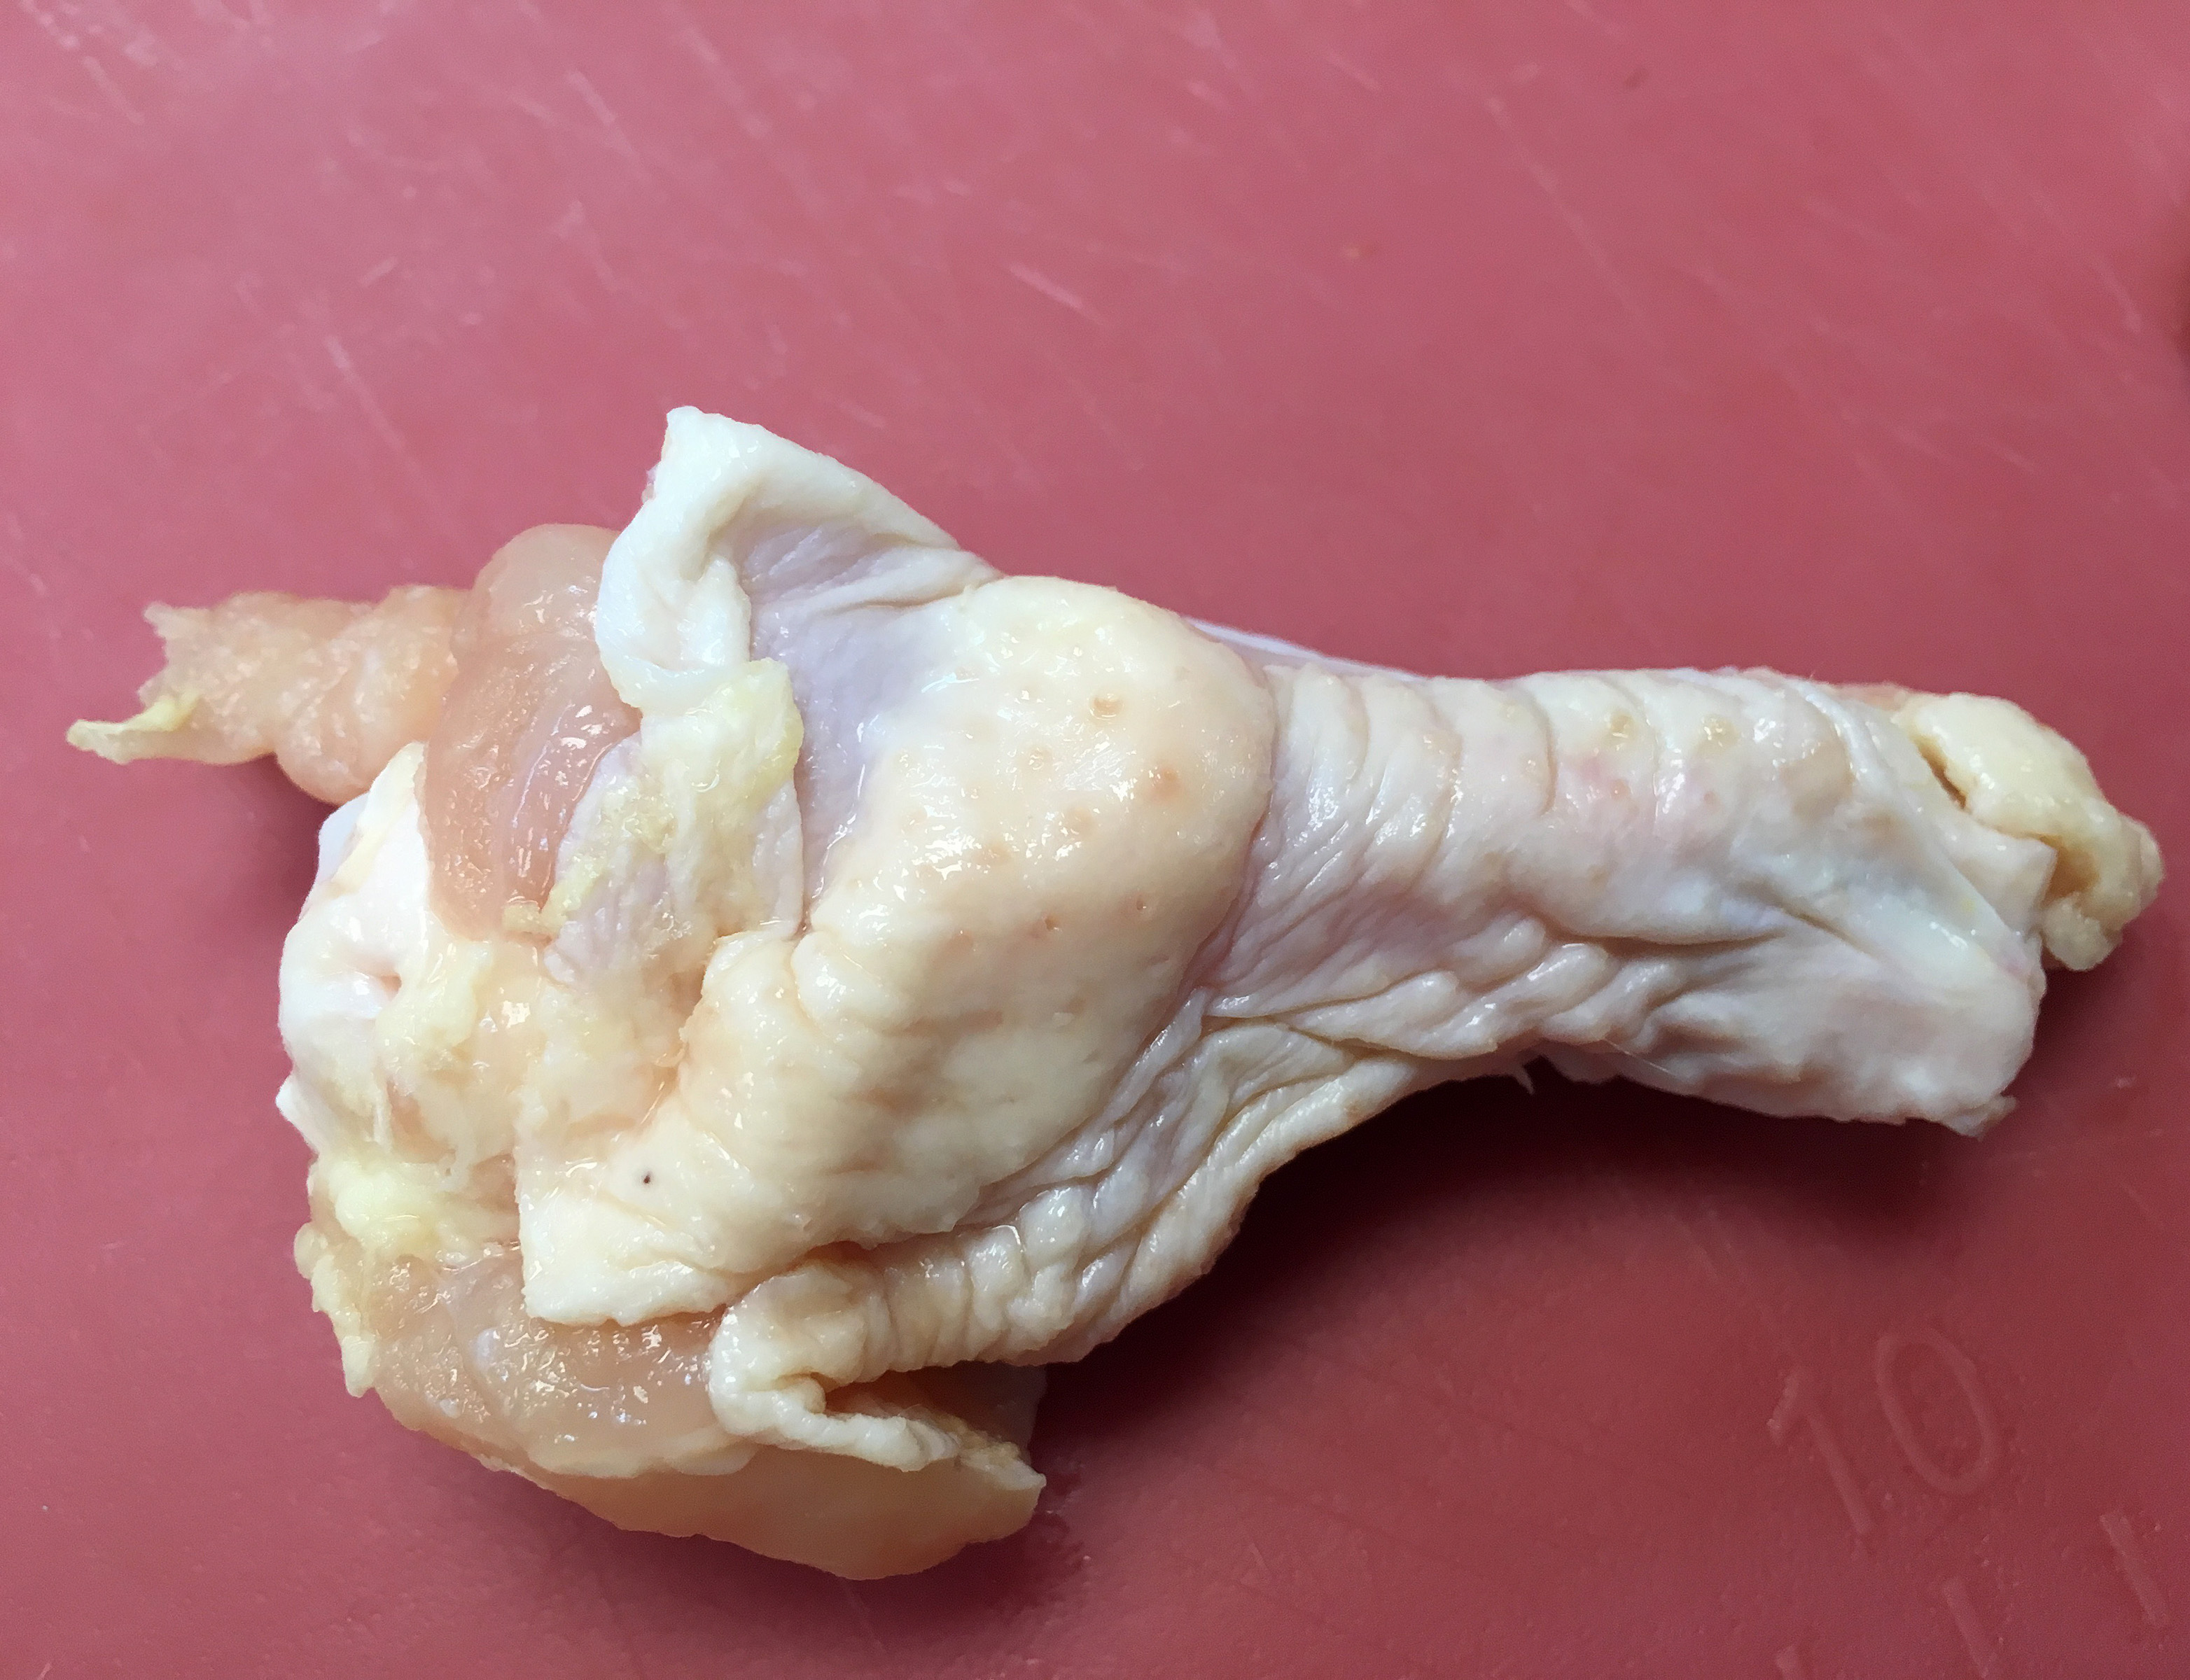 A raw chicken drumette.